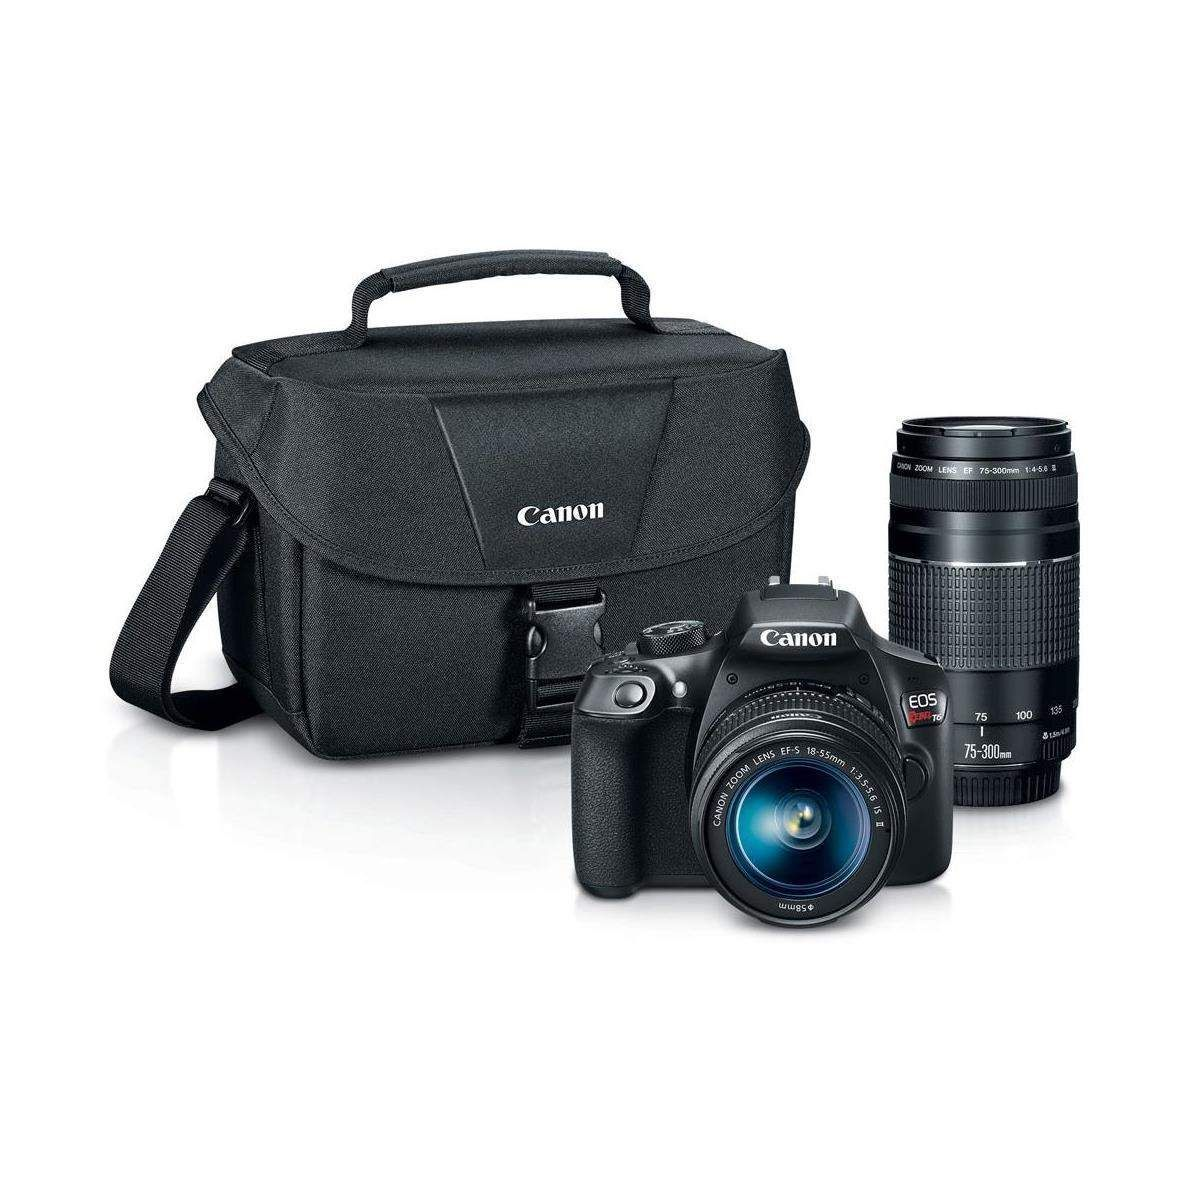 Canon T6 DSLR Camera 18-55mm Lens  75-300MM Lens  pro-100 Printer $349  free shipping (after $300mir)